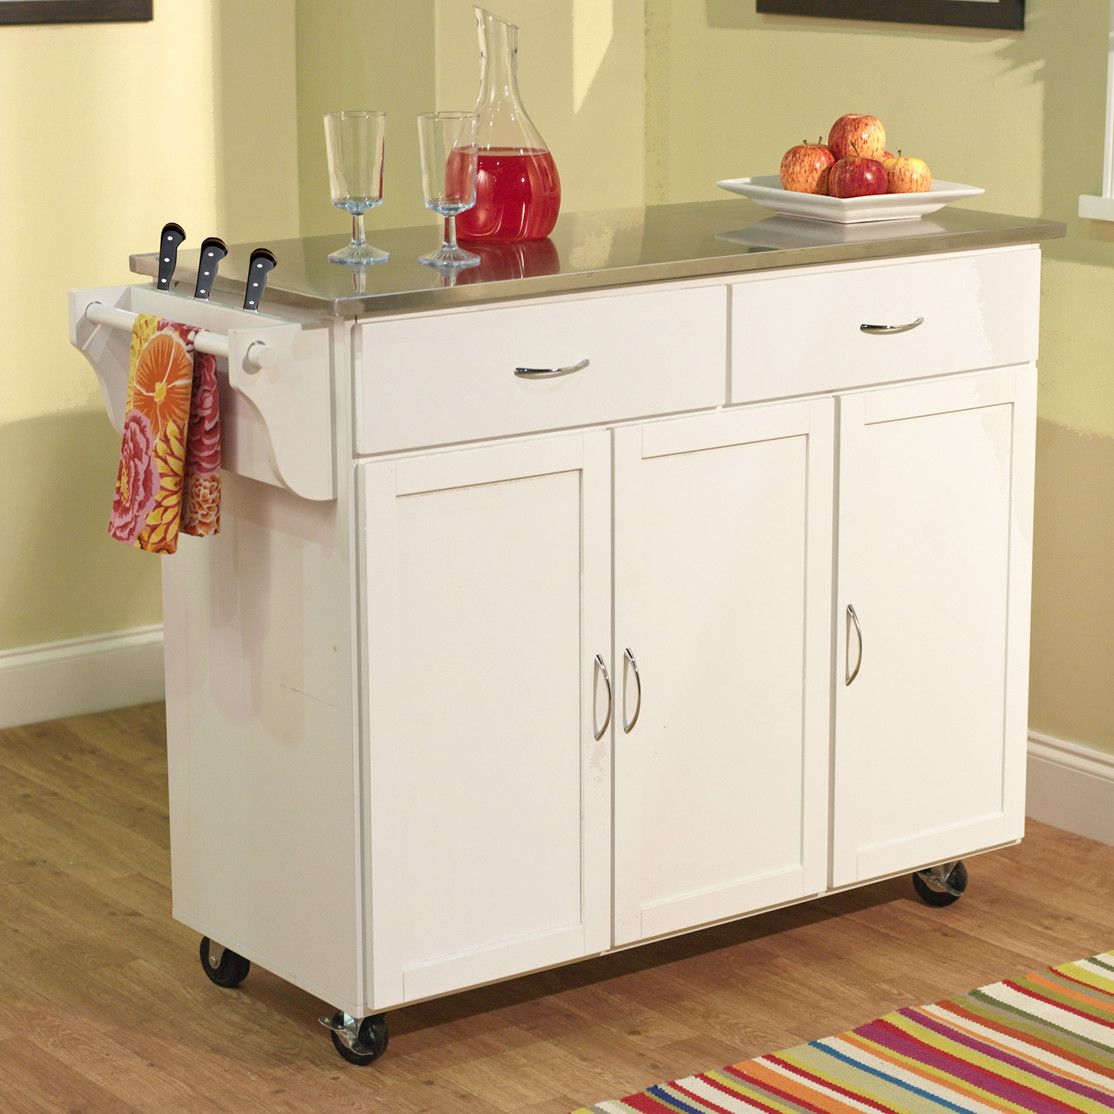 Tms Berkley Kitchen Island With Stainless Steel Top Home Design